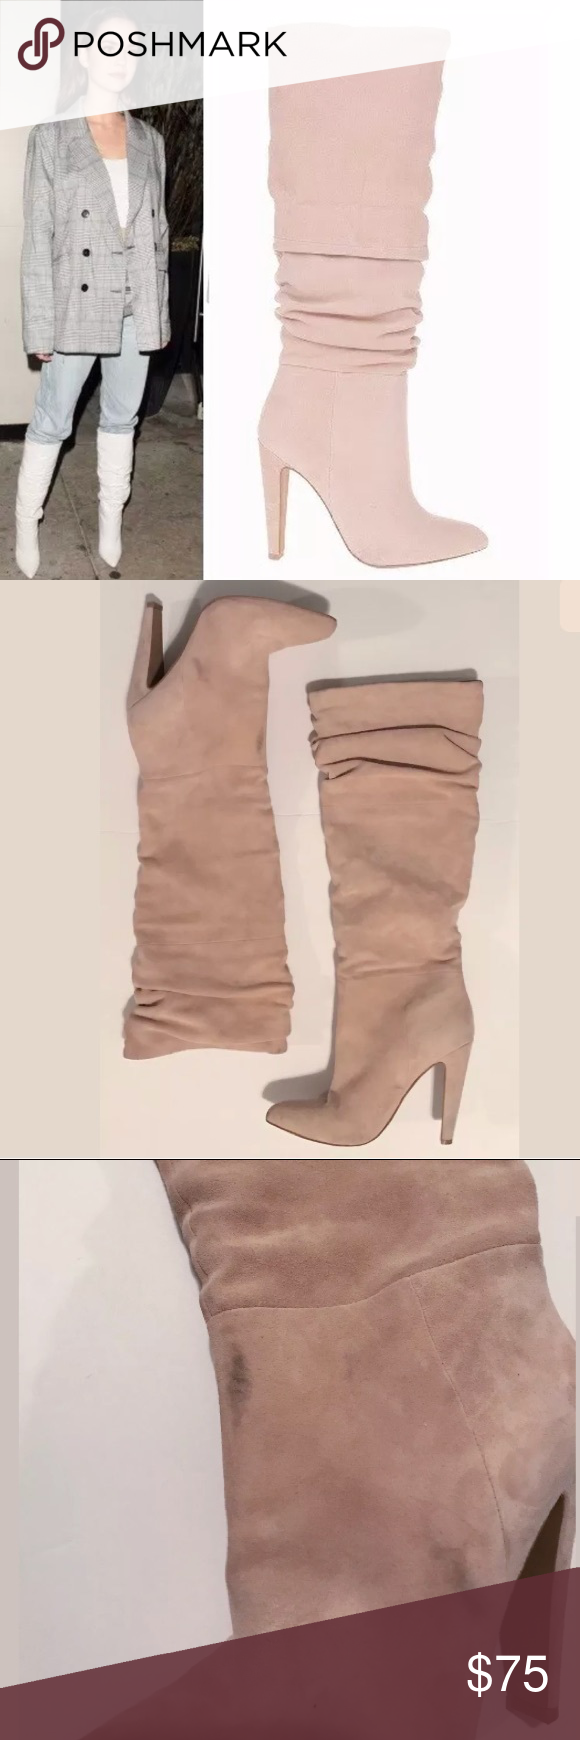 82a8ecdb8ed STEVE MADDEN CARRIE SLOUCH BOOTS Pull on, pointed toe, knee high ...